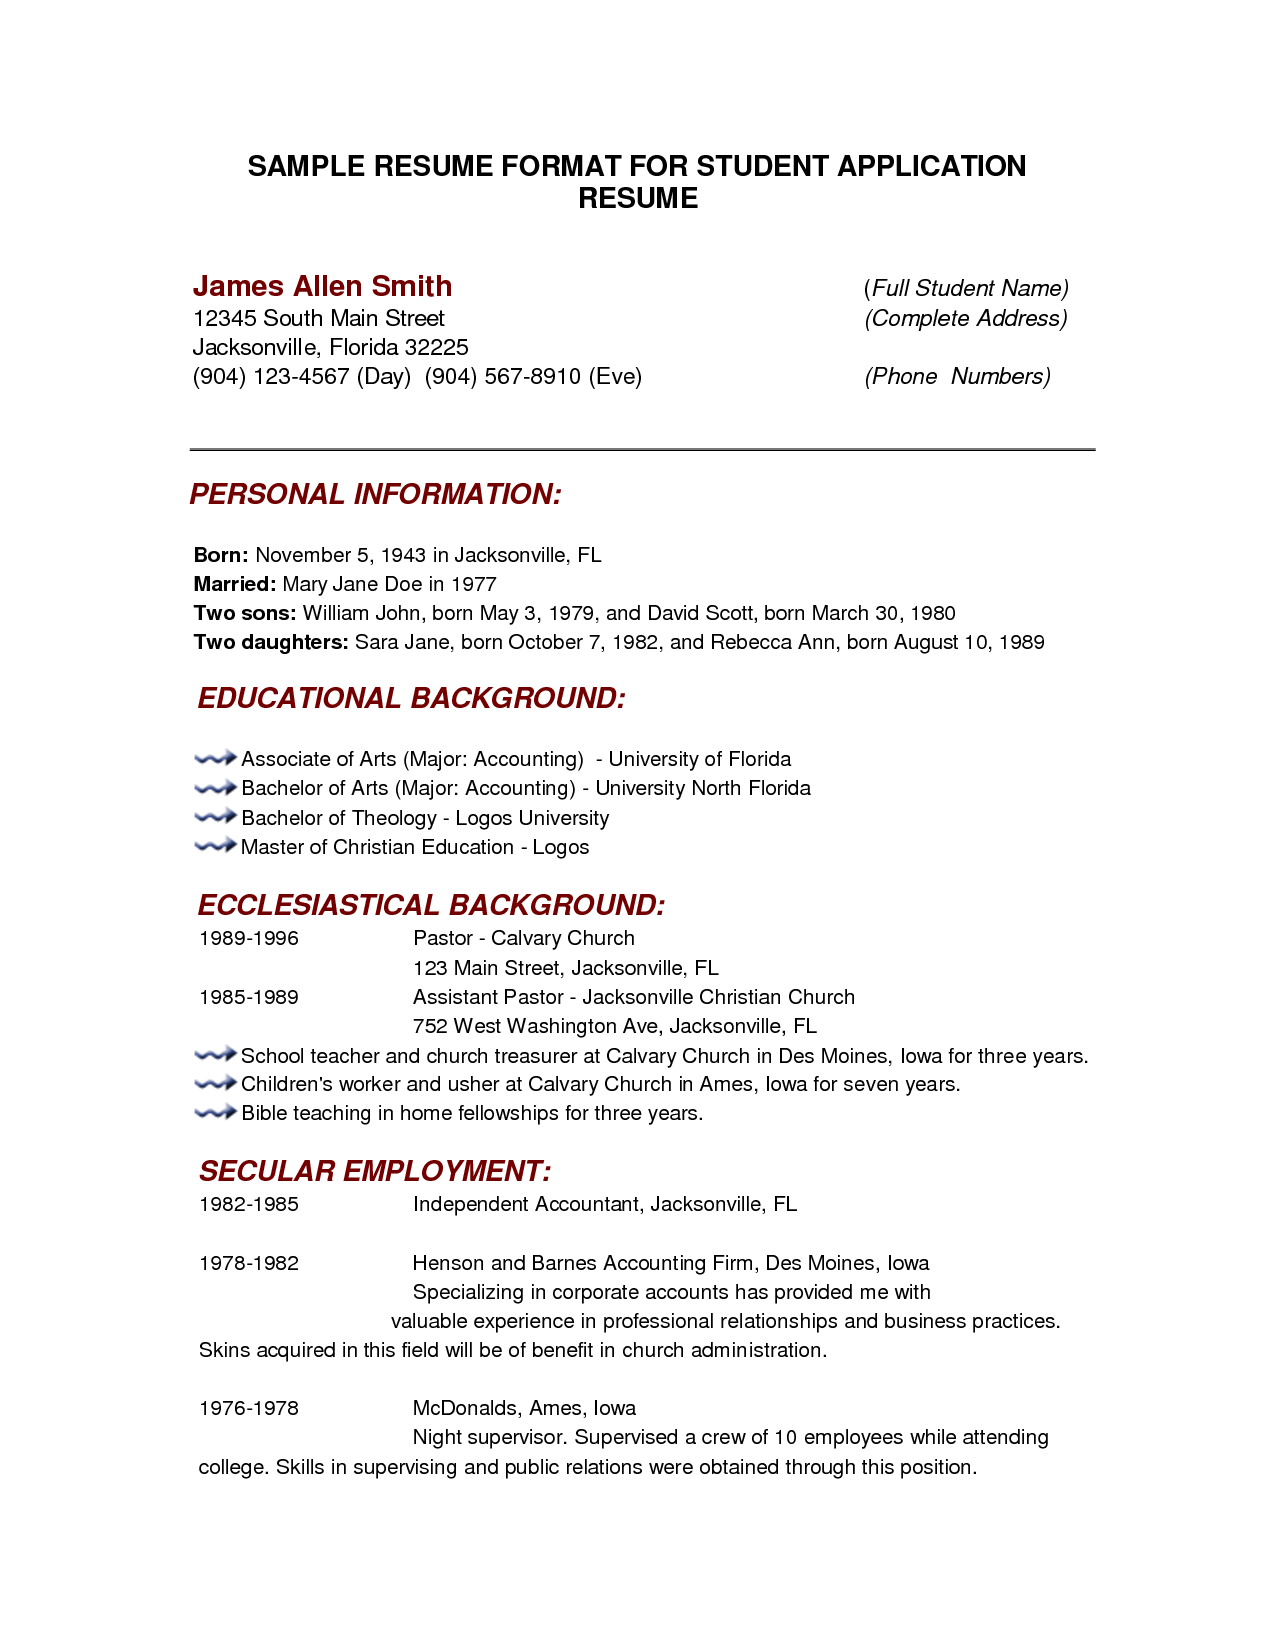 resume format with example - Basic Resume Format Examples